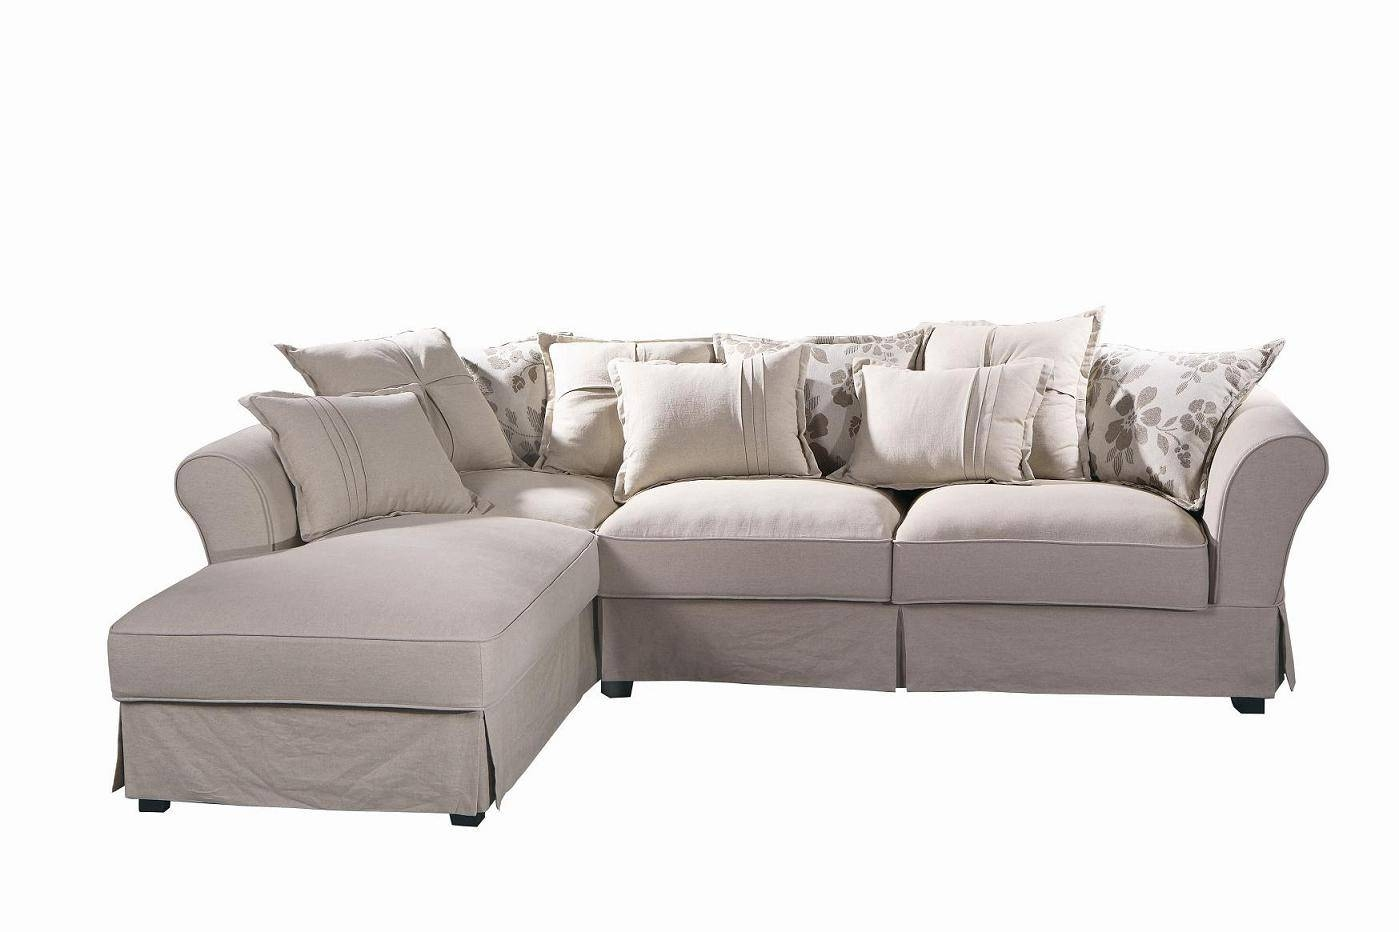 Awesome Arhaus Sectional Sofa 89 For Your Spencer Leather In Spencer Leather Sectional Sofas (View 2 of 15)